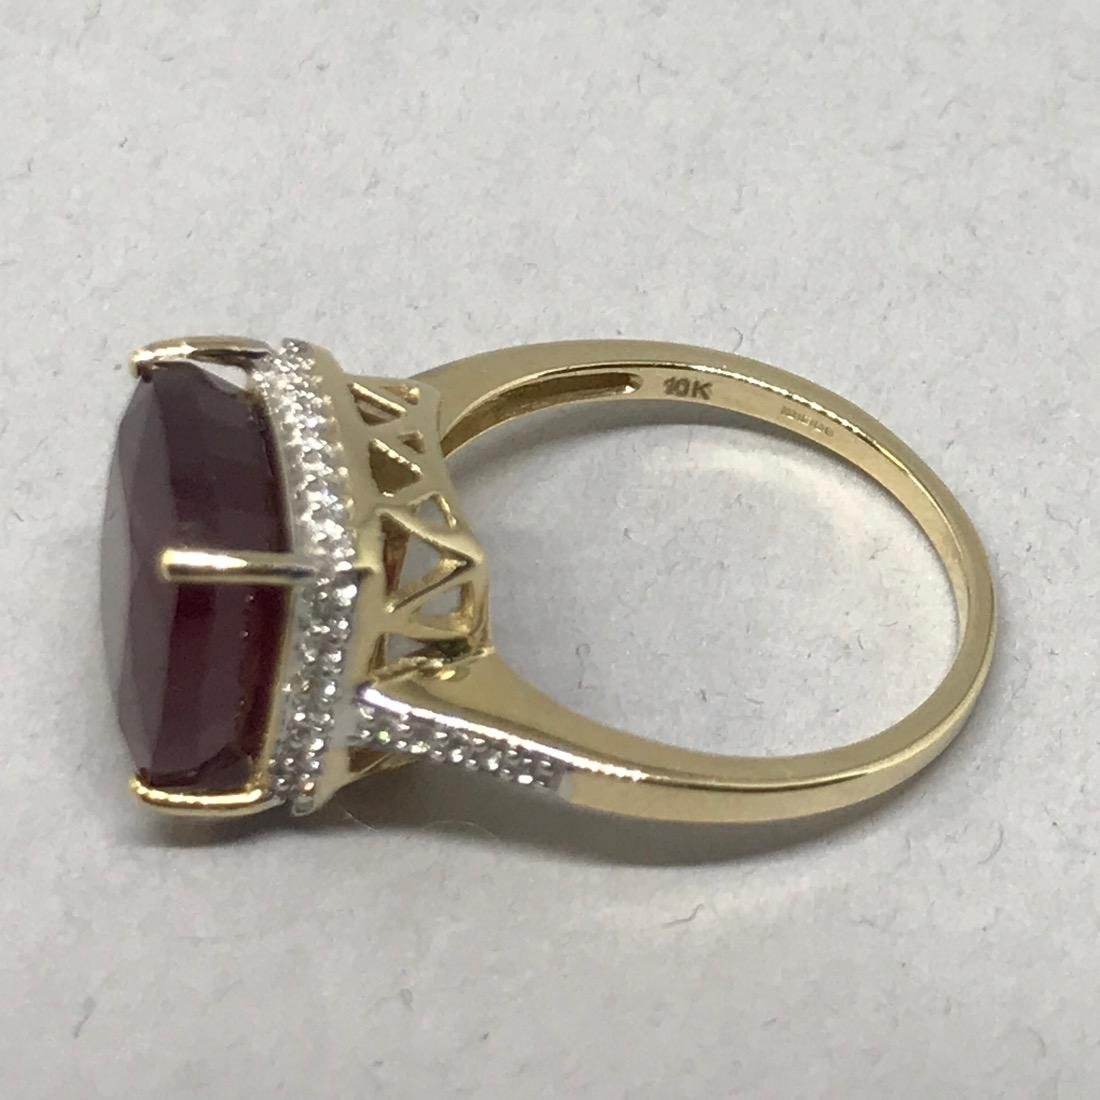 10K Gold Ring with Large - 5